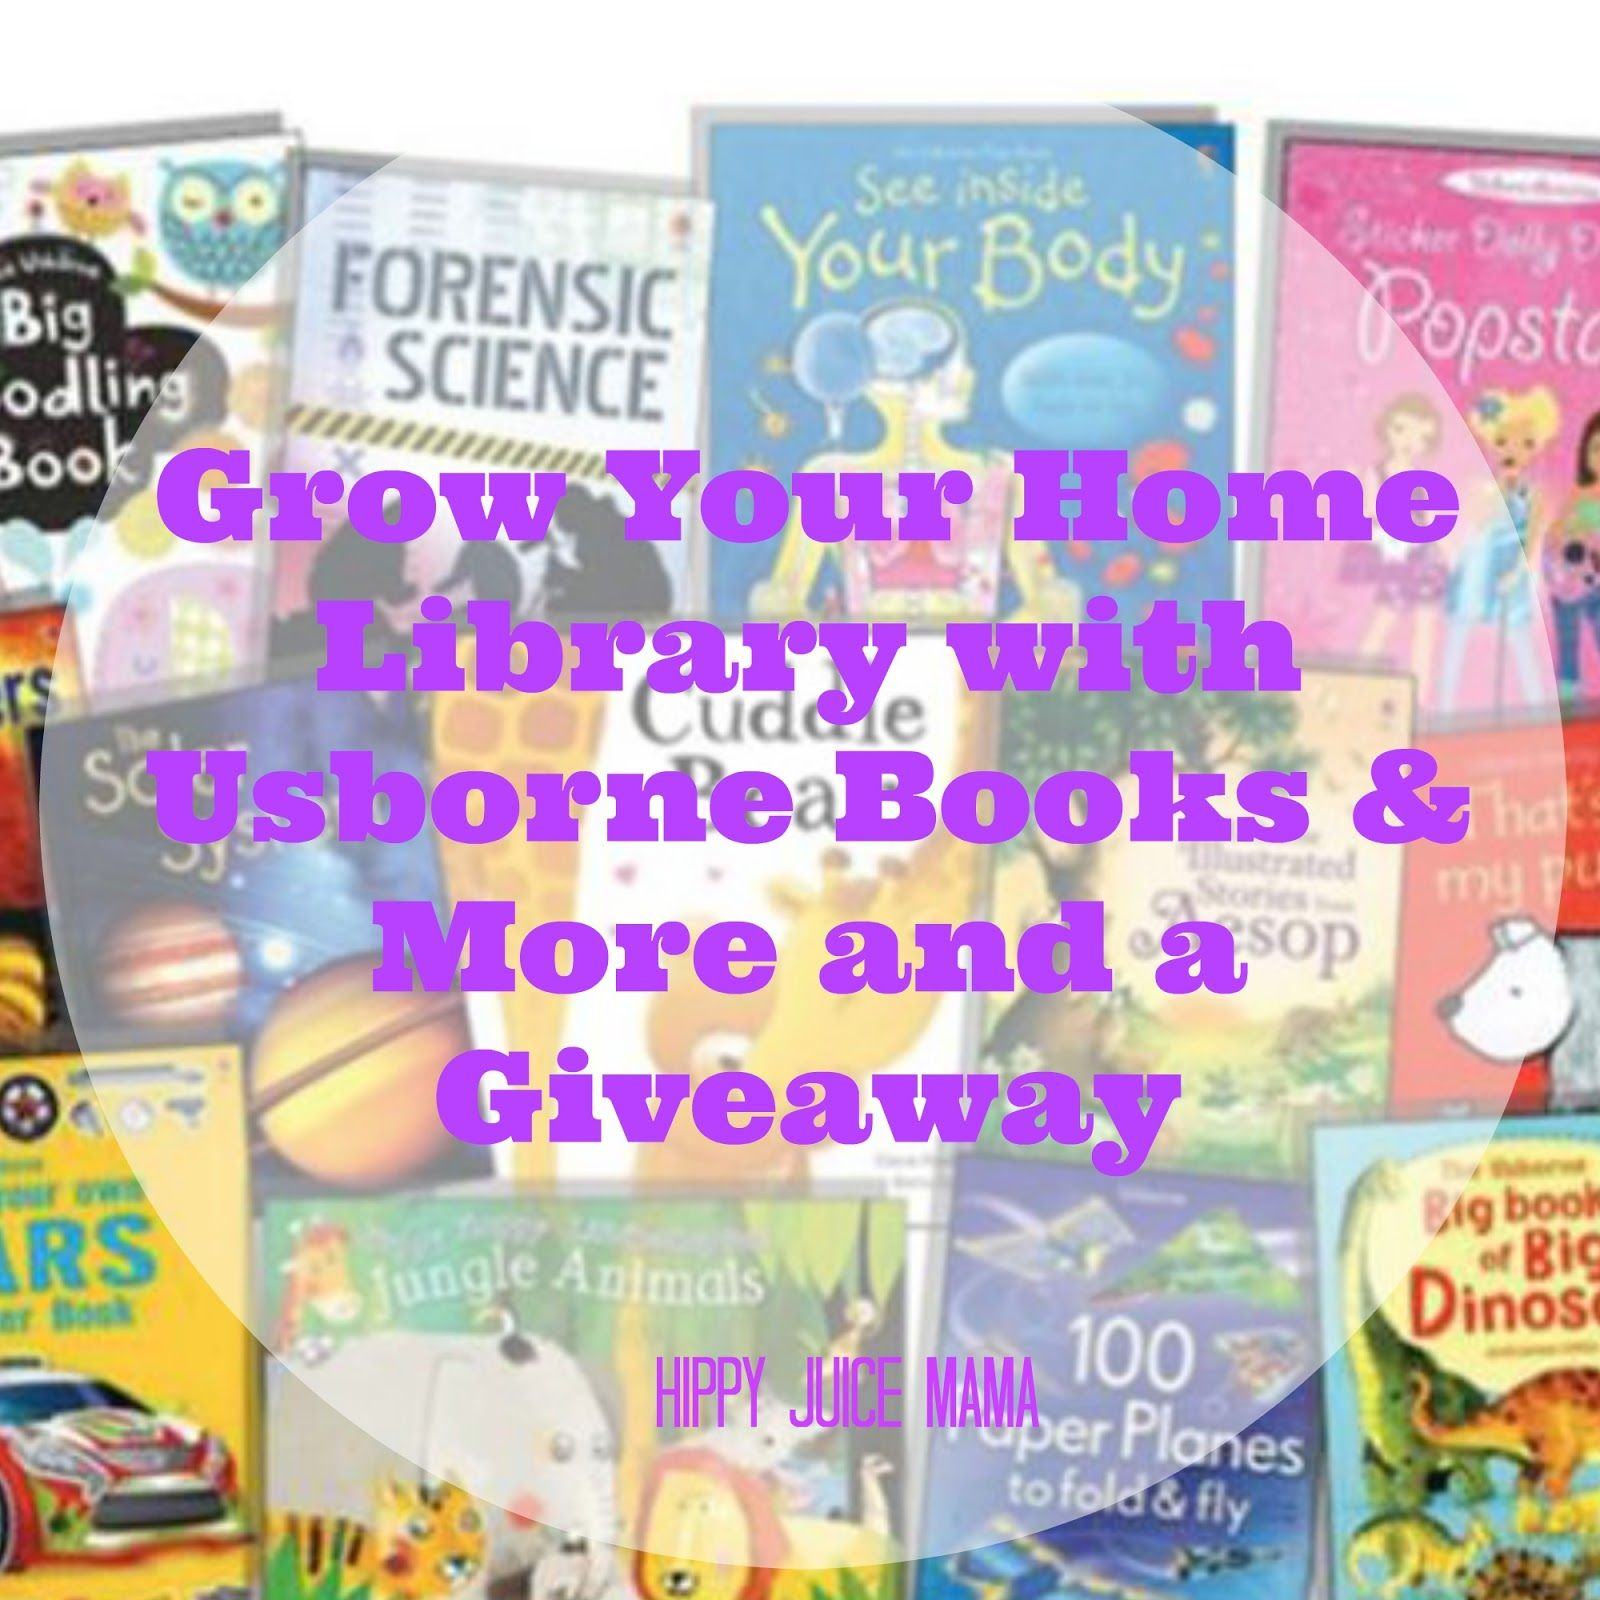 Grow your home library with usborne books more and a